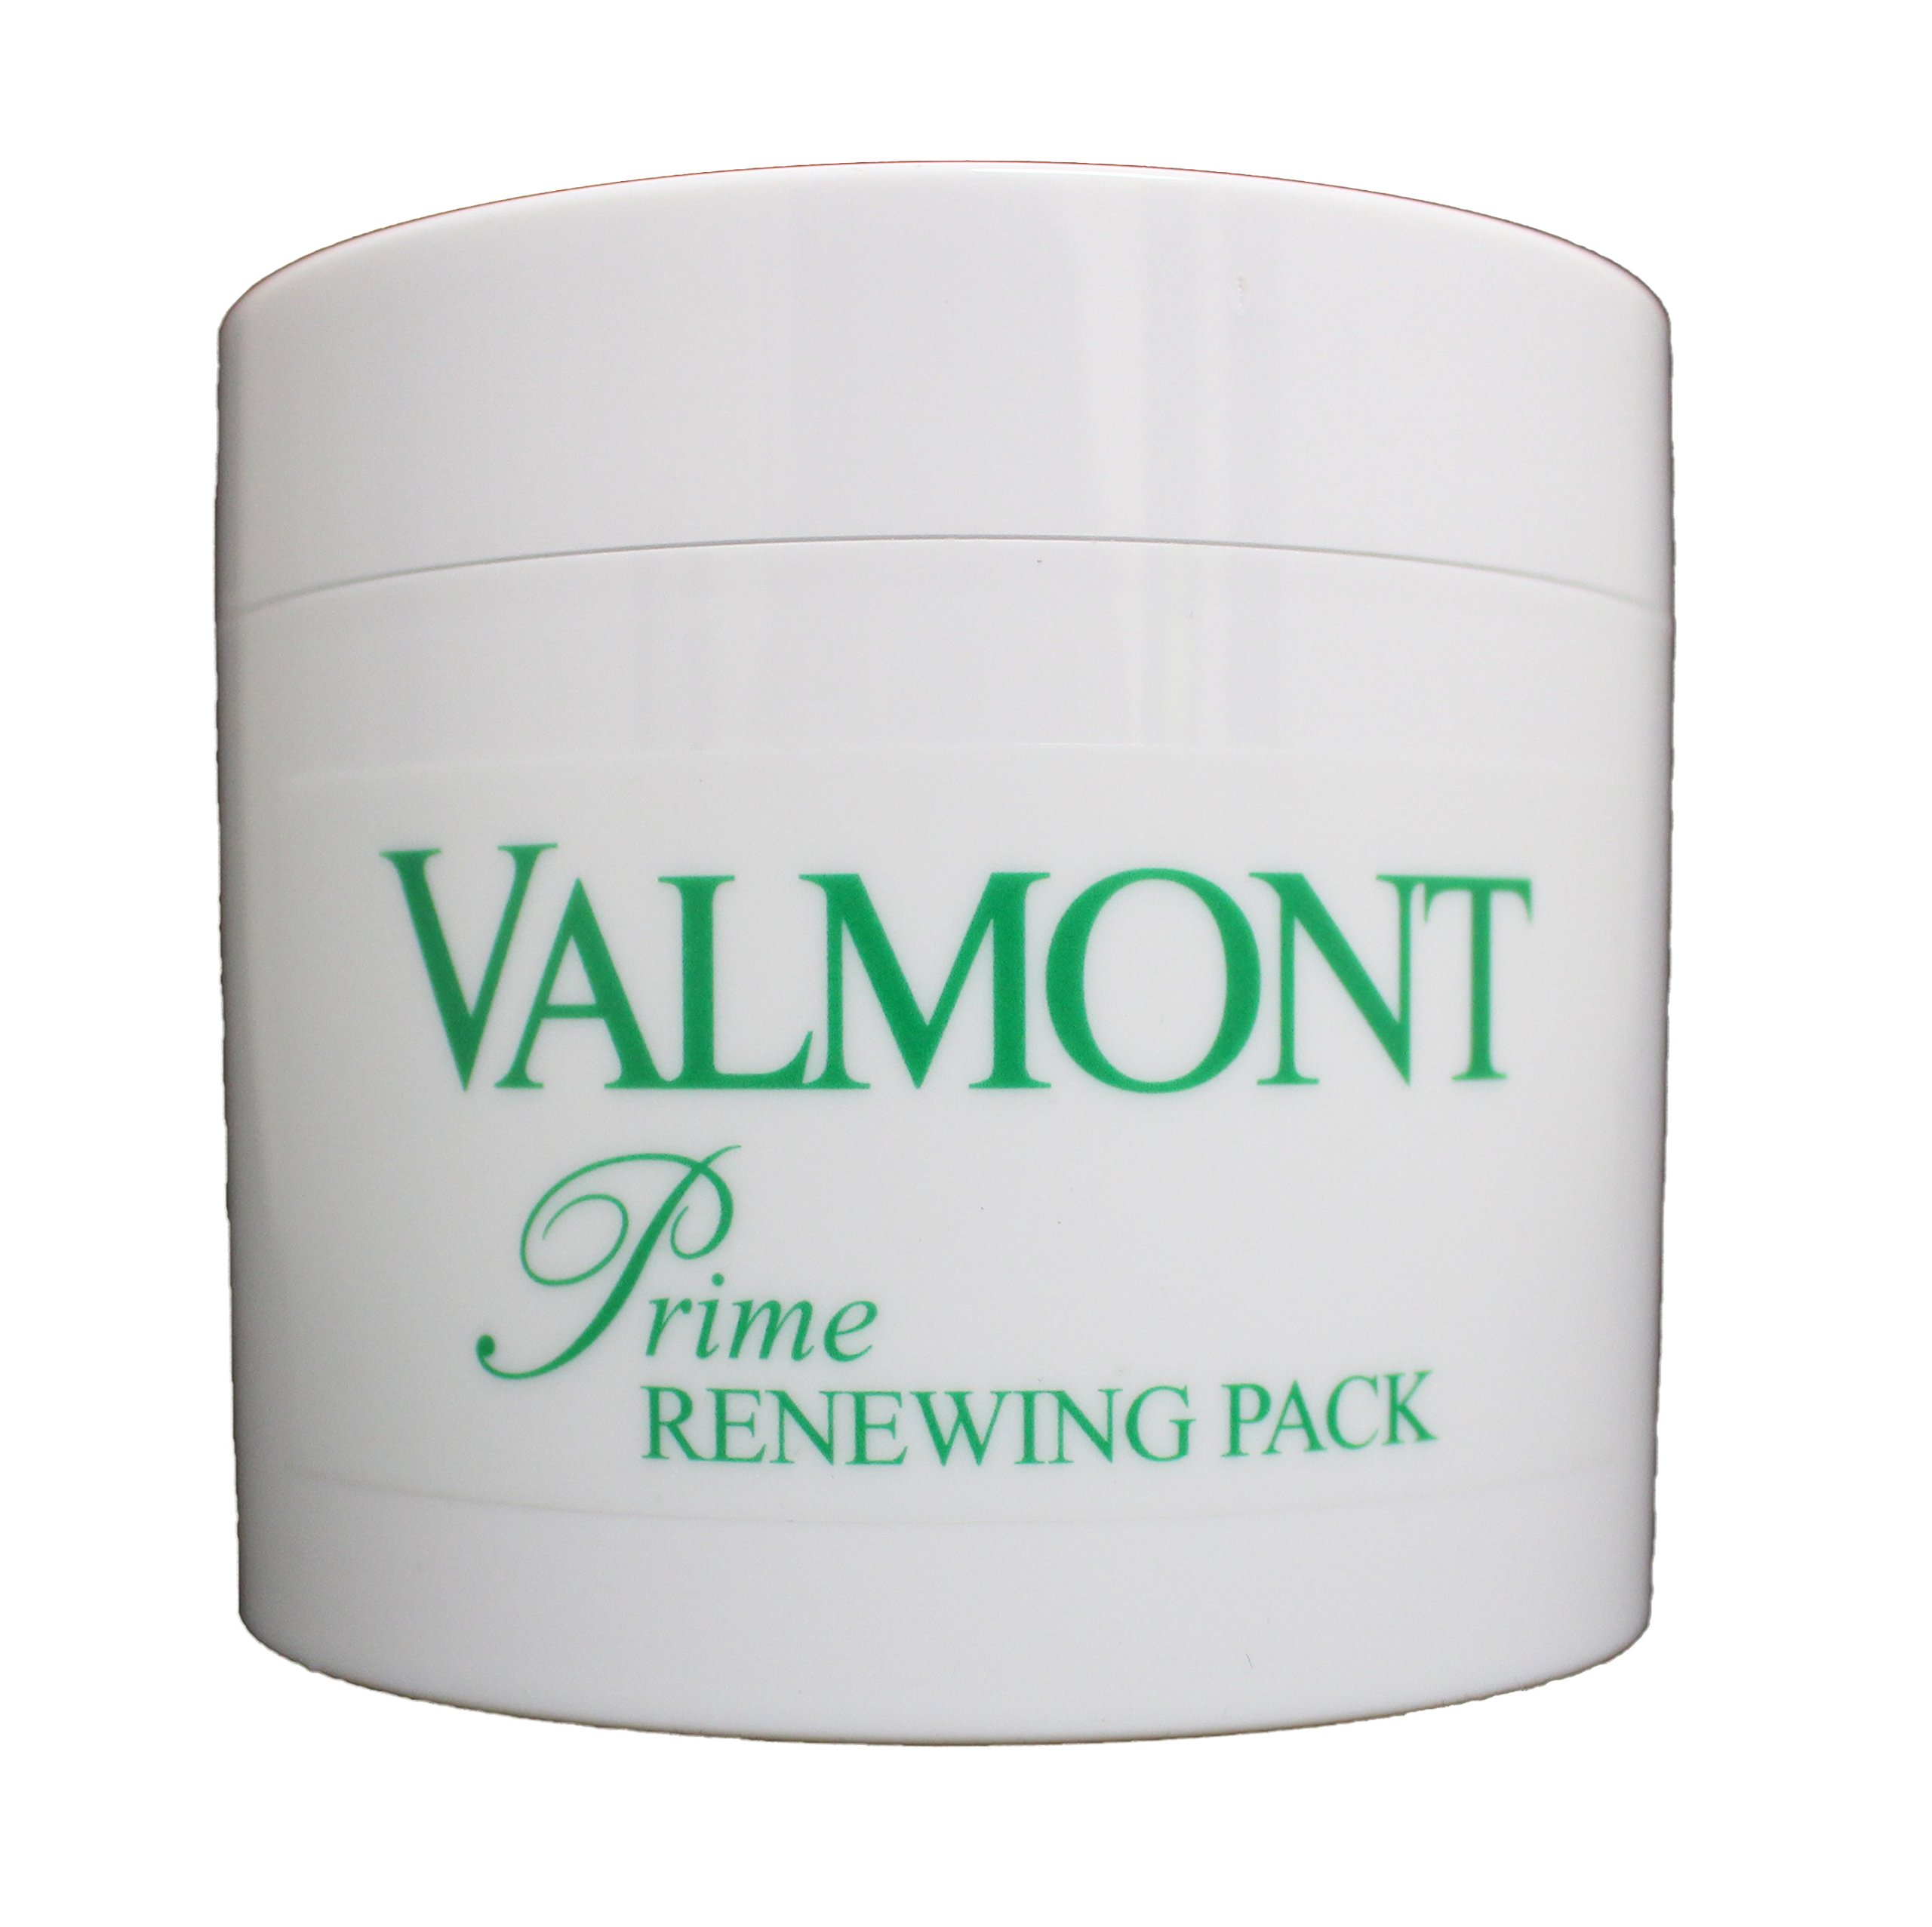 Valmont Prime Renewing Pack, 7.0 Ounce